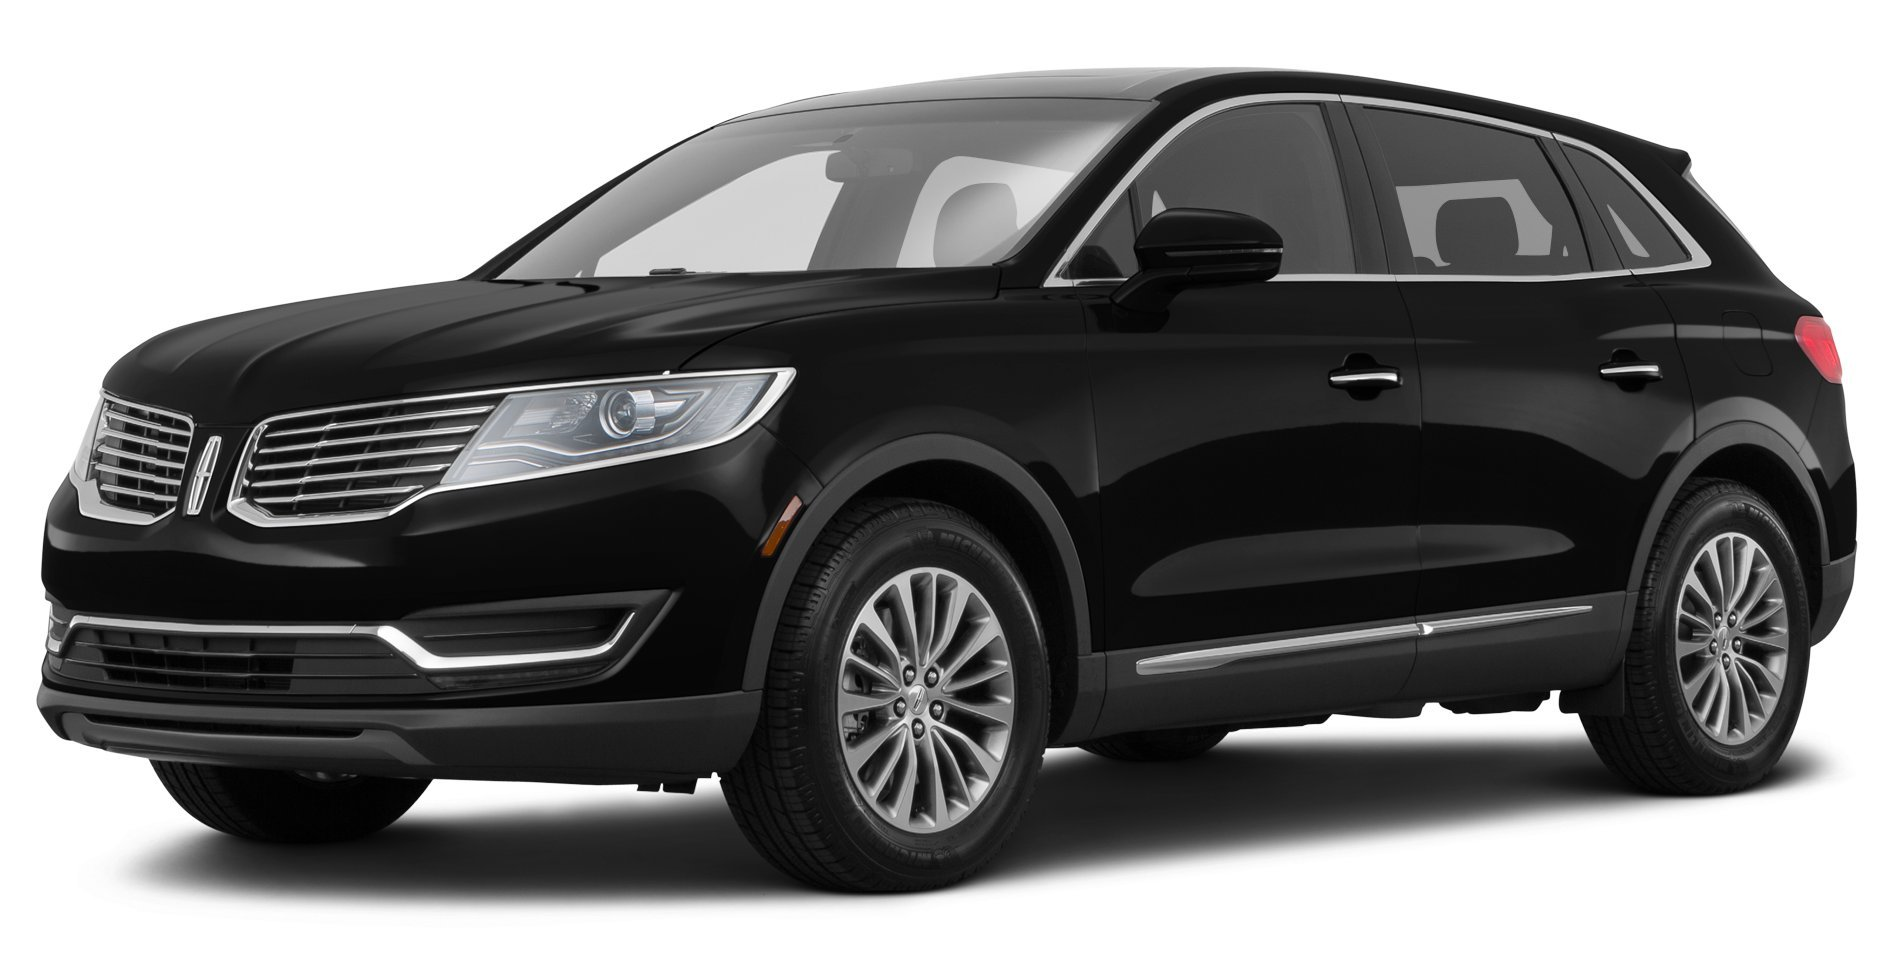 Audi Q5 Seating Capacity >> Amazon.com: 2016 Nissan Murano Reviews, Images, and Specs: Vehicles